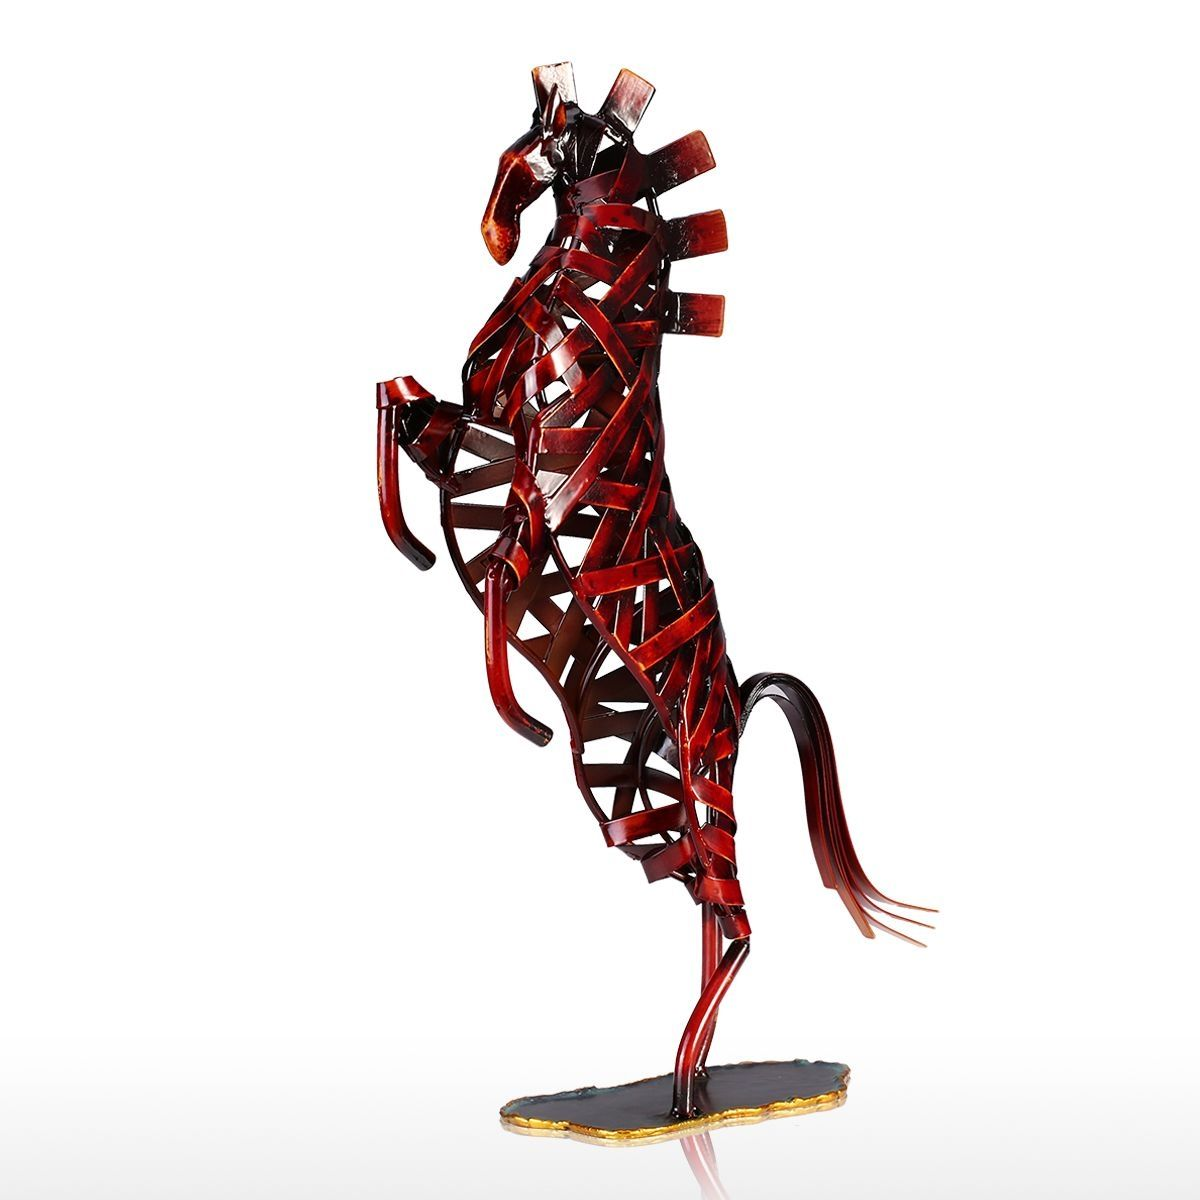 Tooarts Metal Figurine Iron Rooster Home Decor Articles: Best And Cheap Red Tooarts Metal Weaving Horse Iron